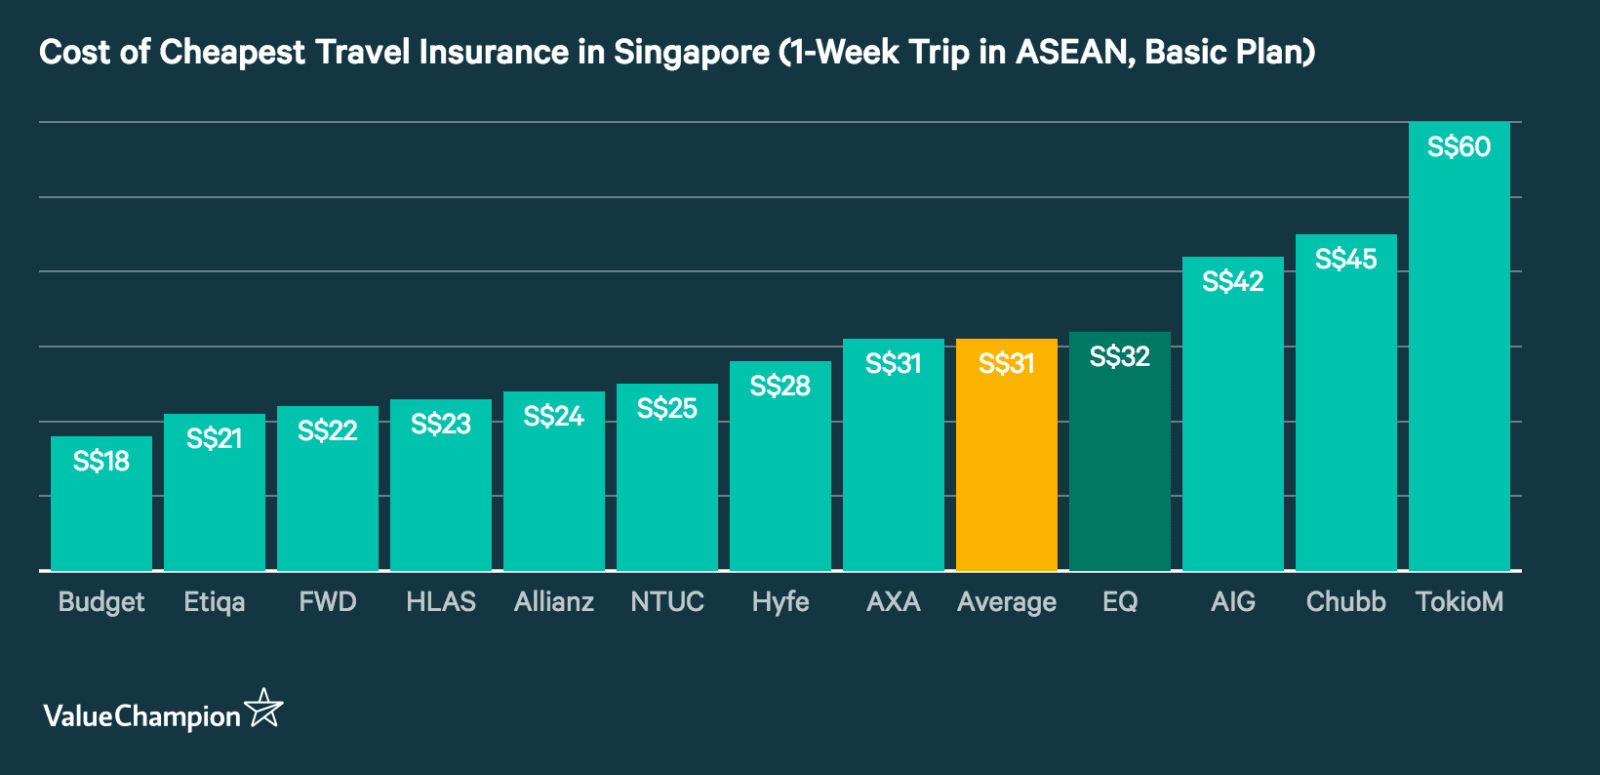 This graph shows the average premiums for a basic travel insurance policy for a 1-week trip to the ASEAN region